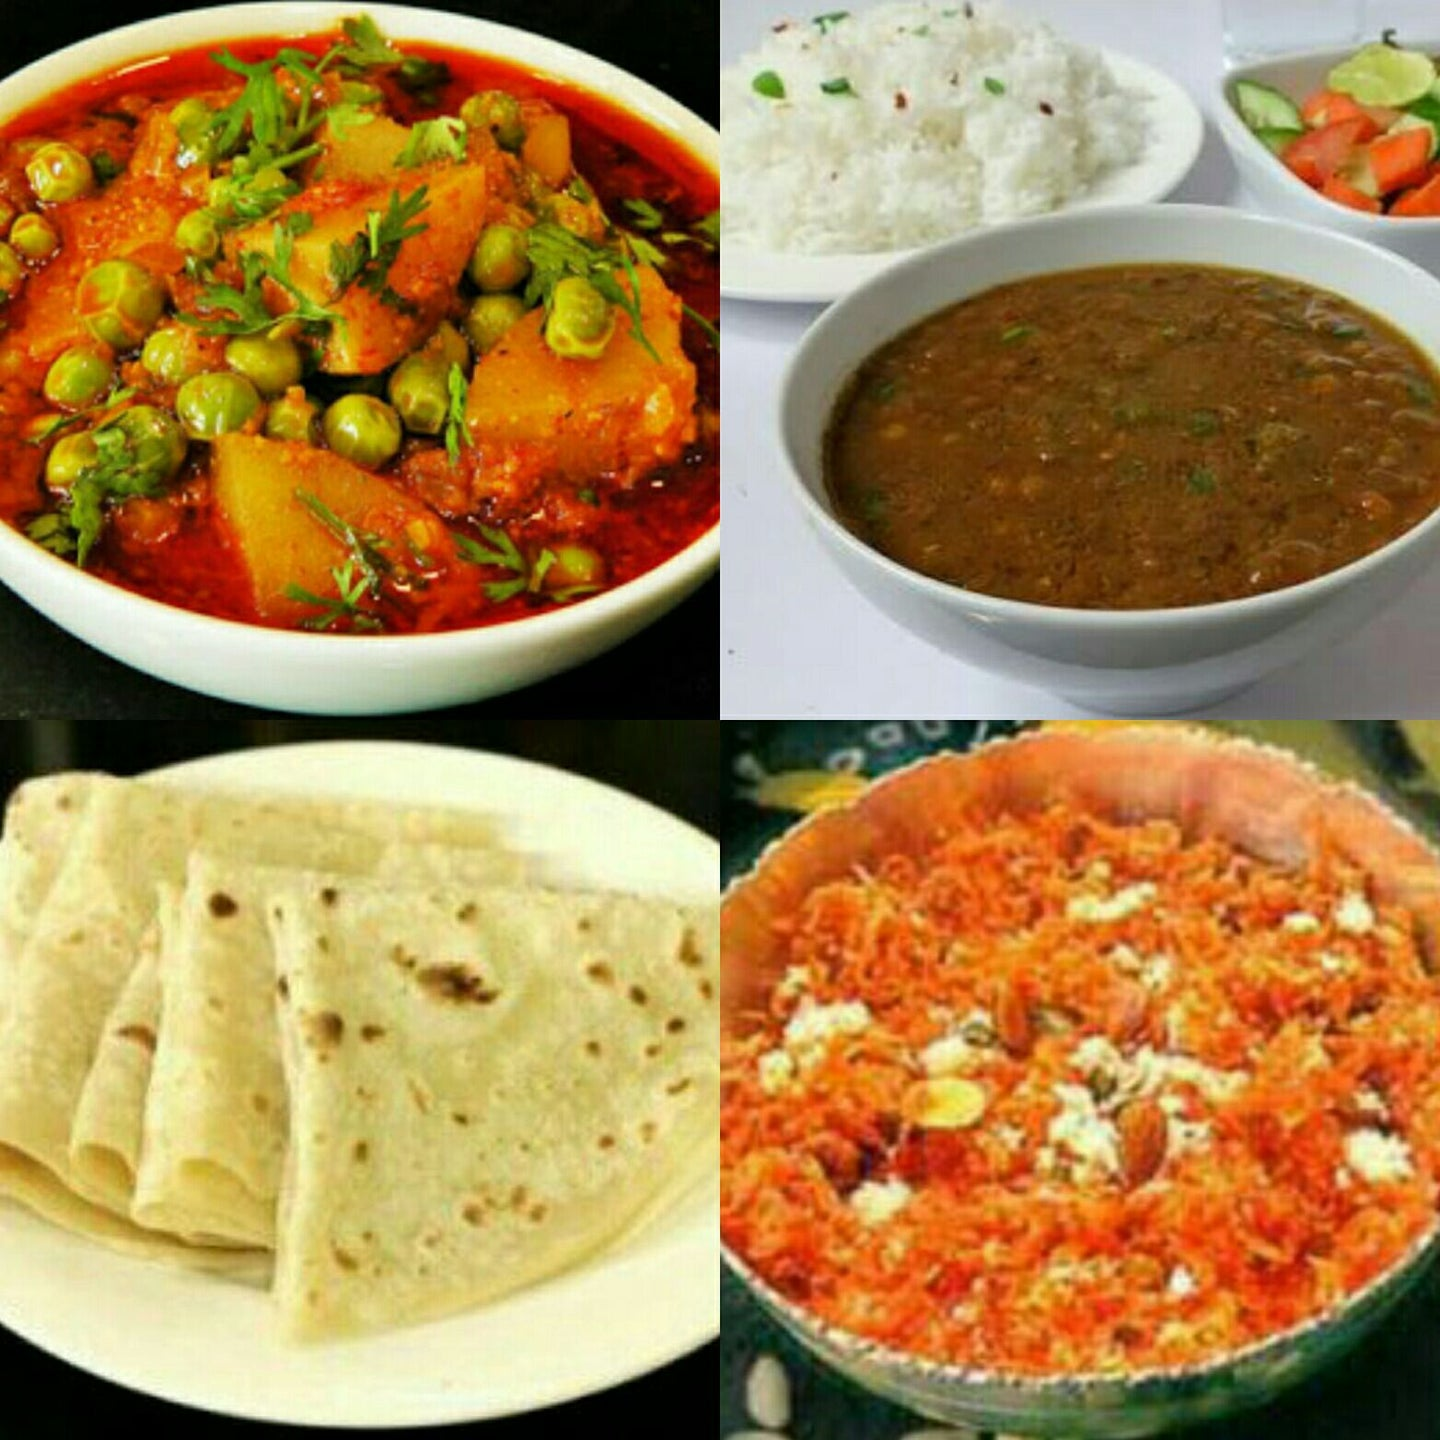 Spl Masoor Dal Tadka,Steam Rice,Roti- or-Paratha-3,Aloo Mutter,Pickle, Papad,Salad,Gajer ka Halwa